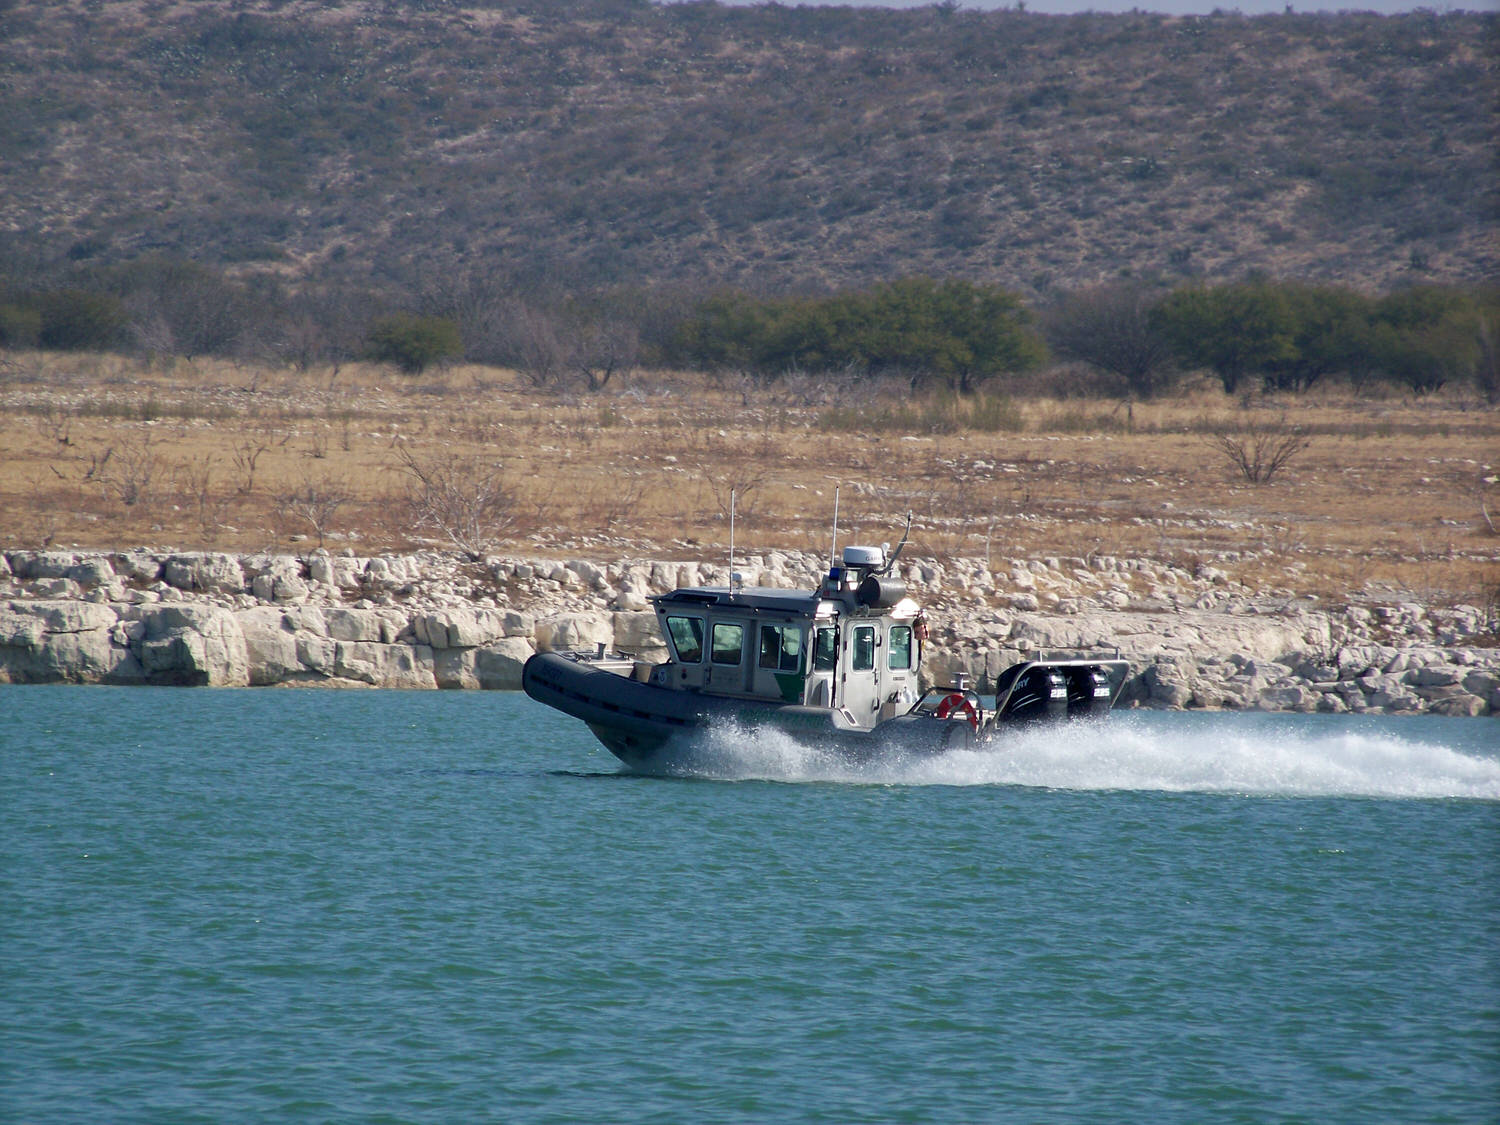 U.S. Border Patrol, behave yourself. There should be several Go Pro's on that ride!